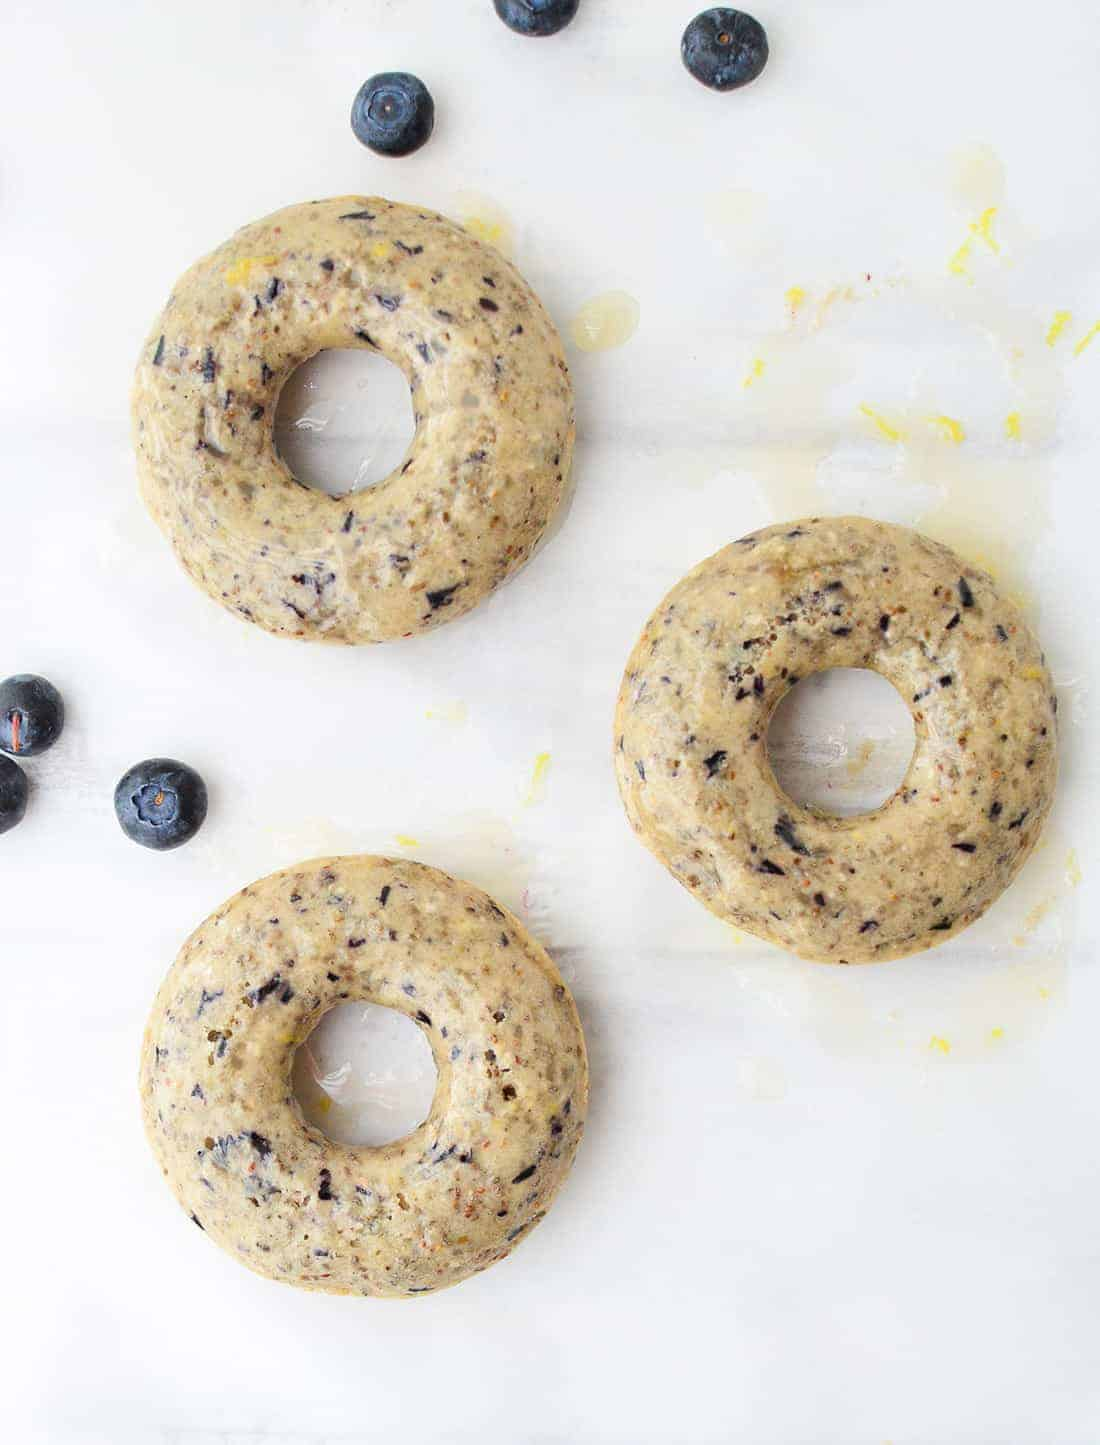 Blueberry Lemon Chia Donuts! Vegan cake donuts that are packed with fiber and omega-3 fatty acids! Perfect for breakfast, snack or dessert! |www.delishknowledge.com